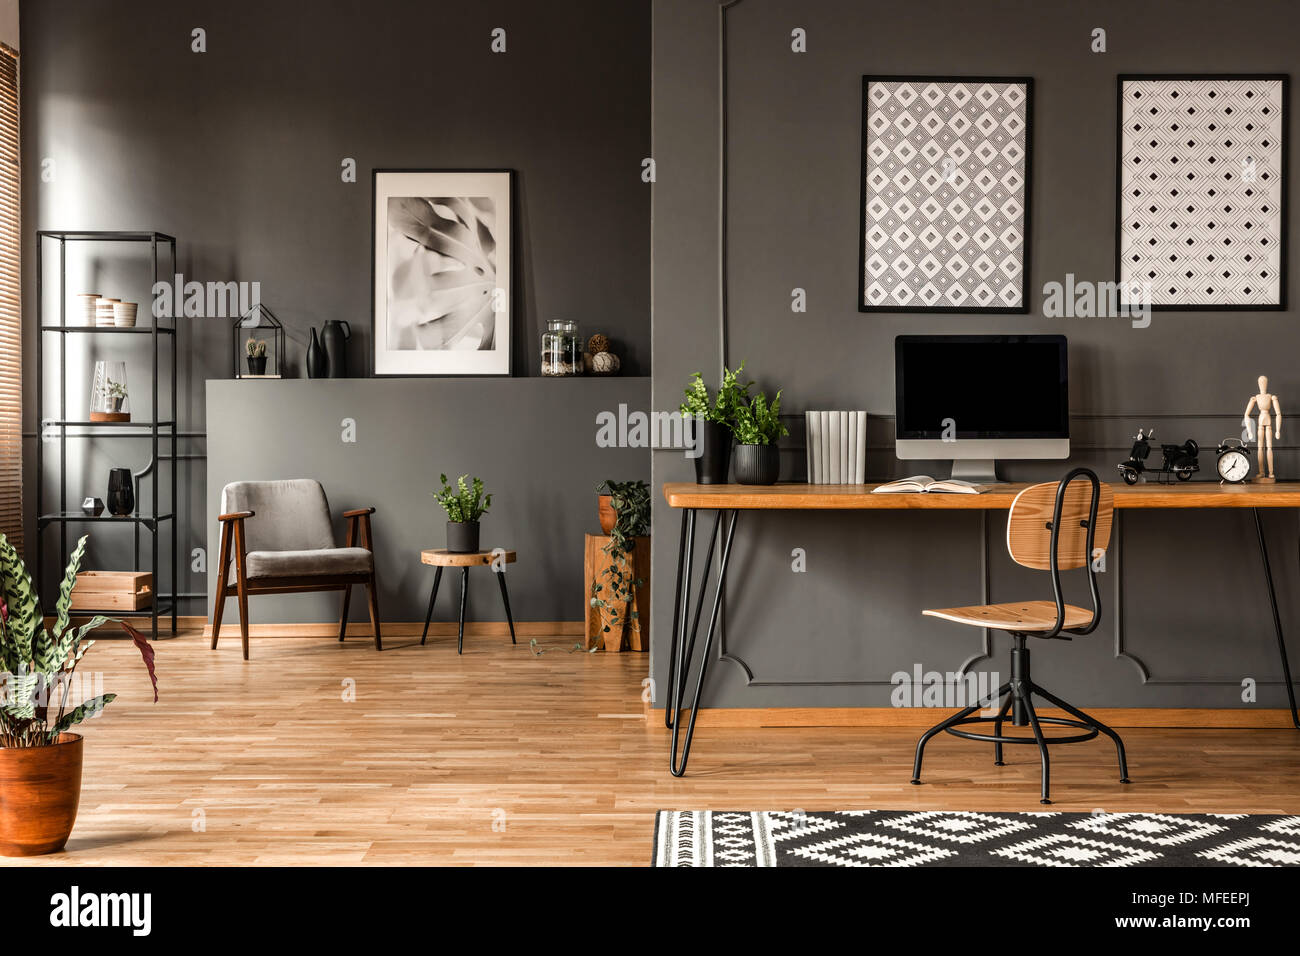 Patterned posters above desk with computer monitor in grey home office interior with plants - Stock Image